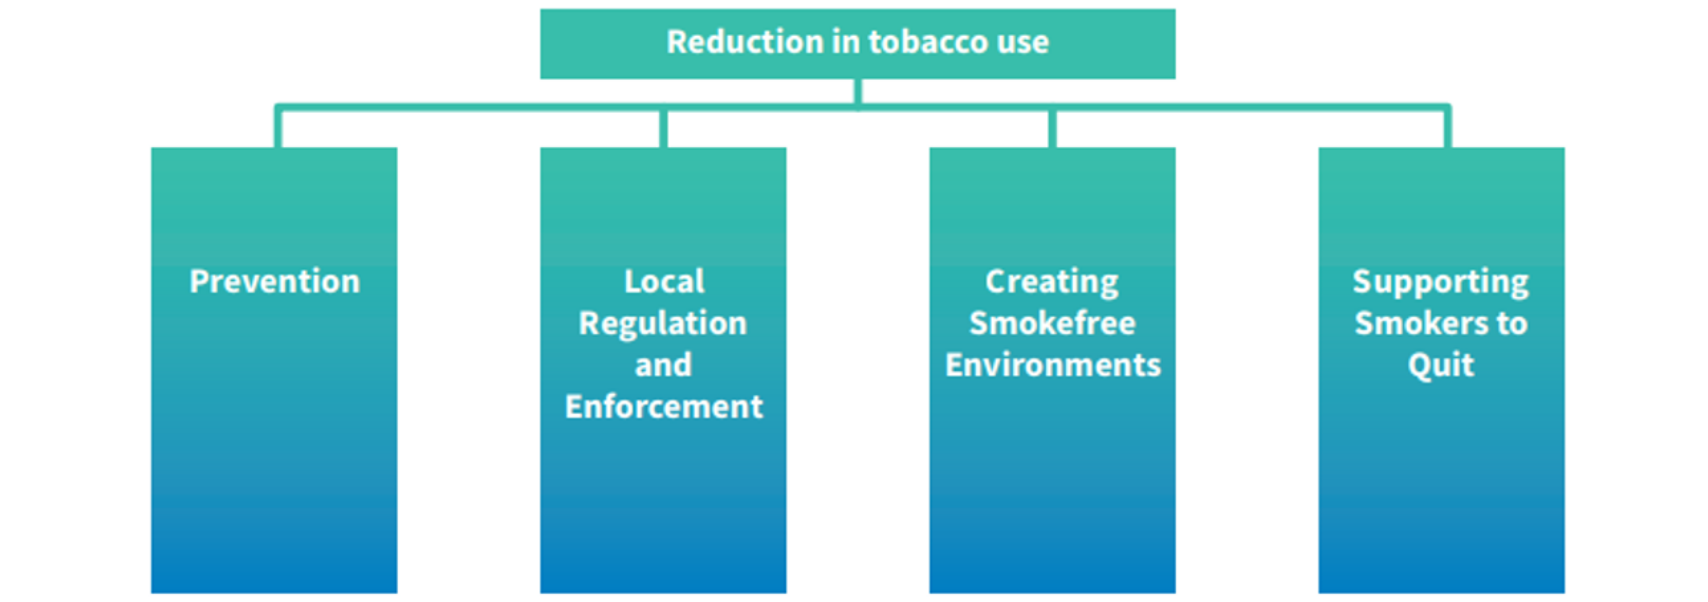 Reduction in tobacco use